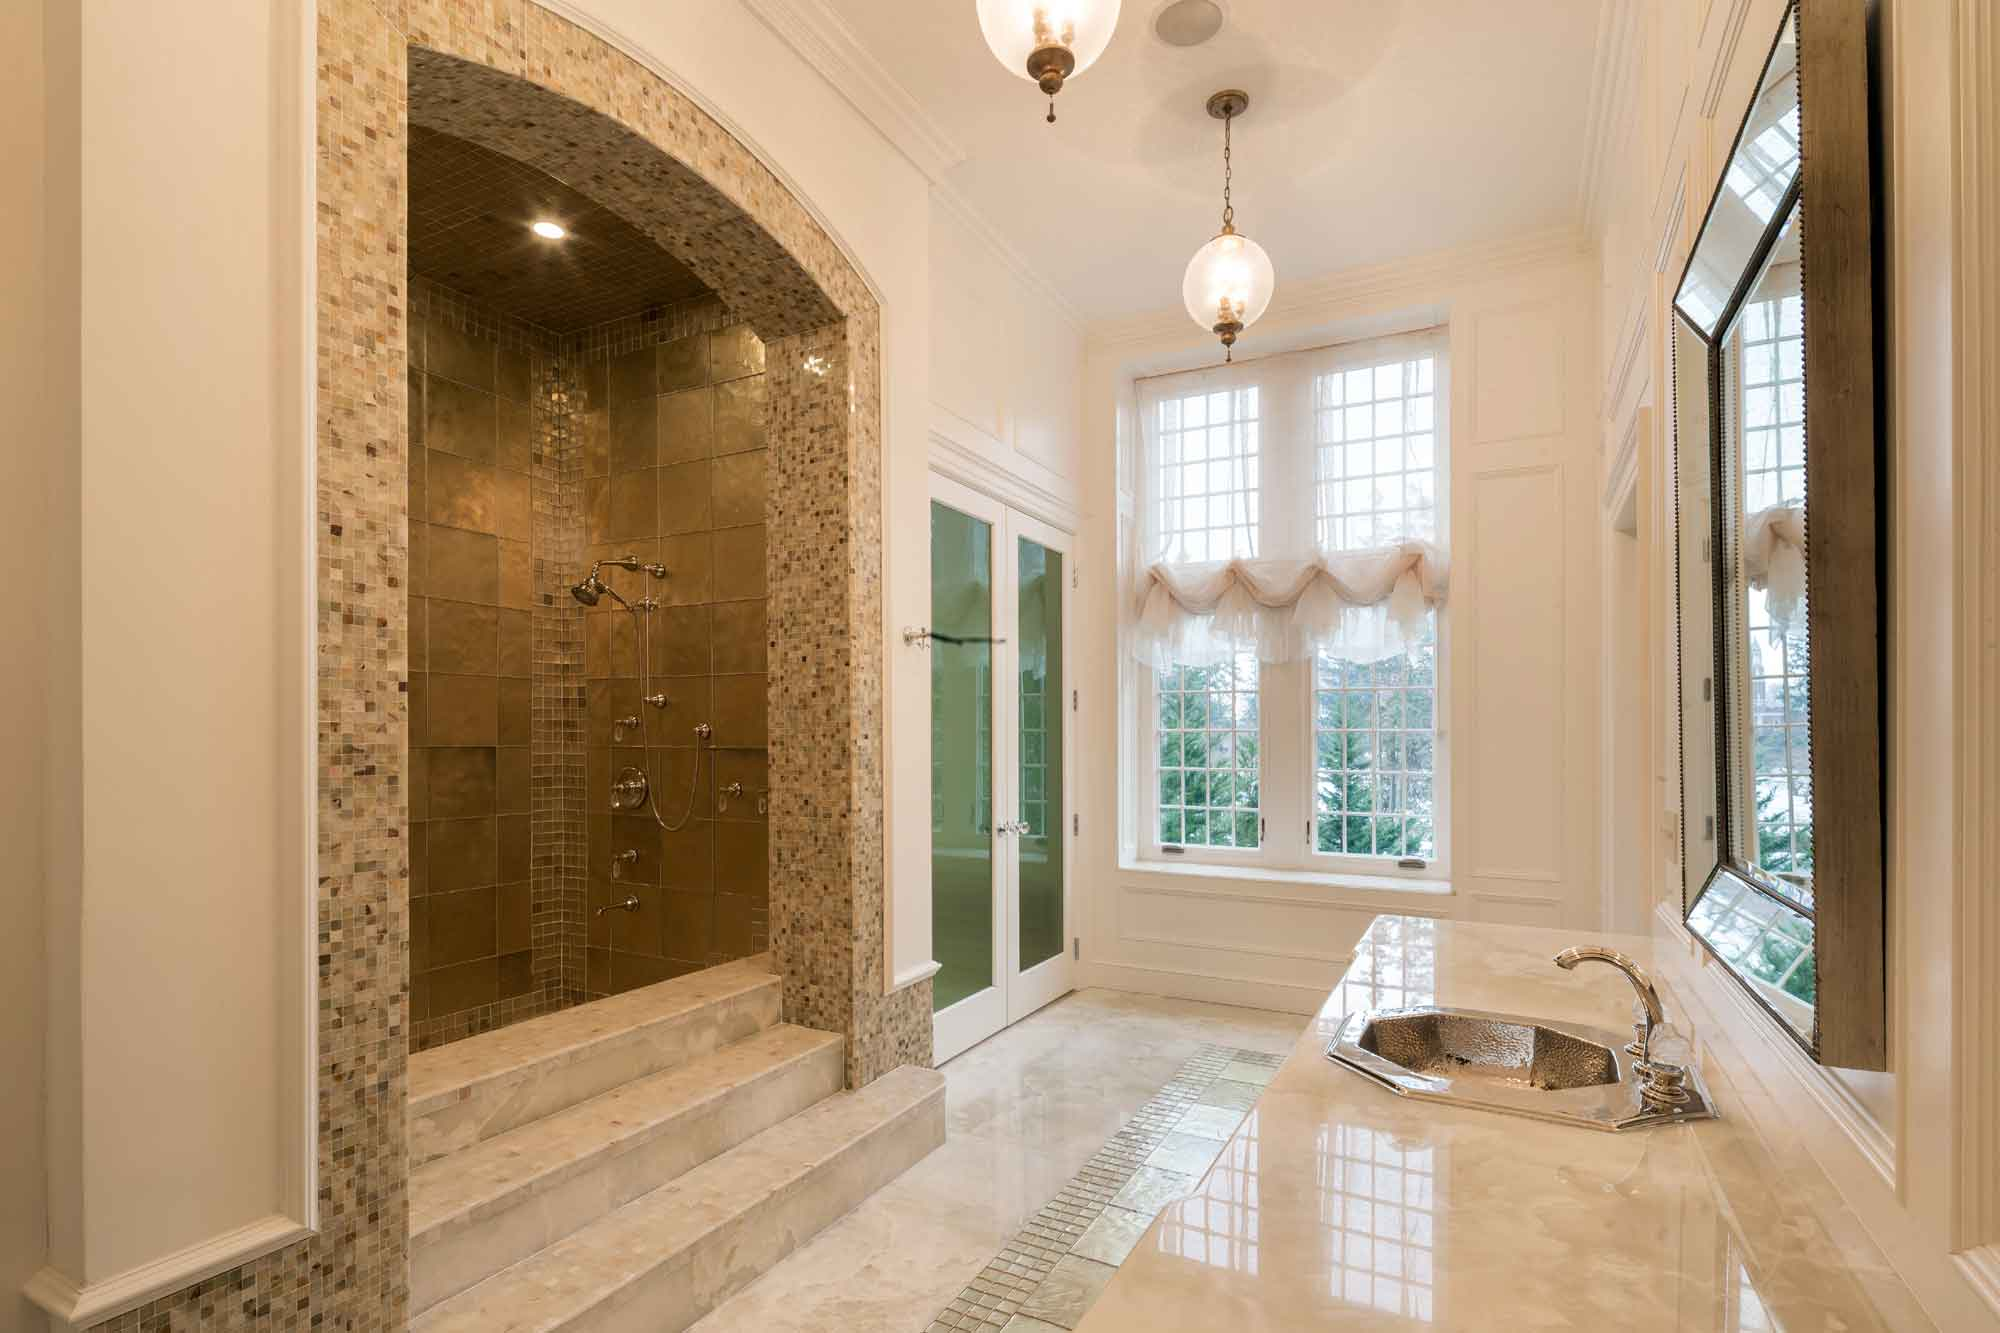 Darlington's his-and-her master bathroom is finished in marble and equipped with the finest spa-inspired amenities. The 50,000-square-foot, 21-bedroom mansion boasts an additional 28 bathrooms (all beautifully rebuilt during the home's remarkable seven-year restoration).